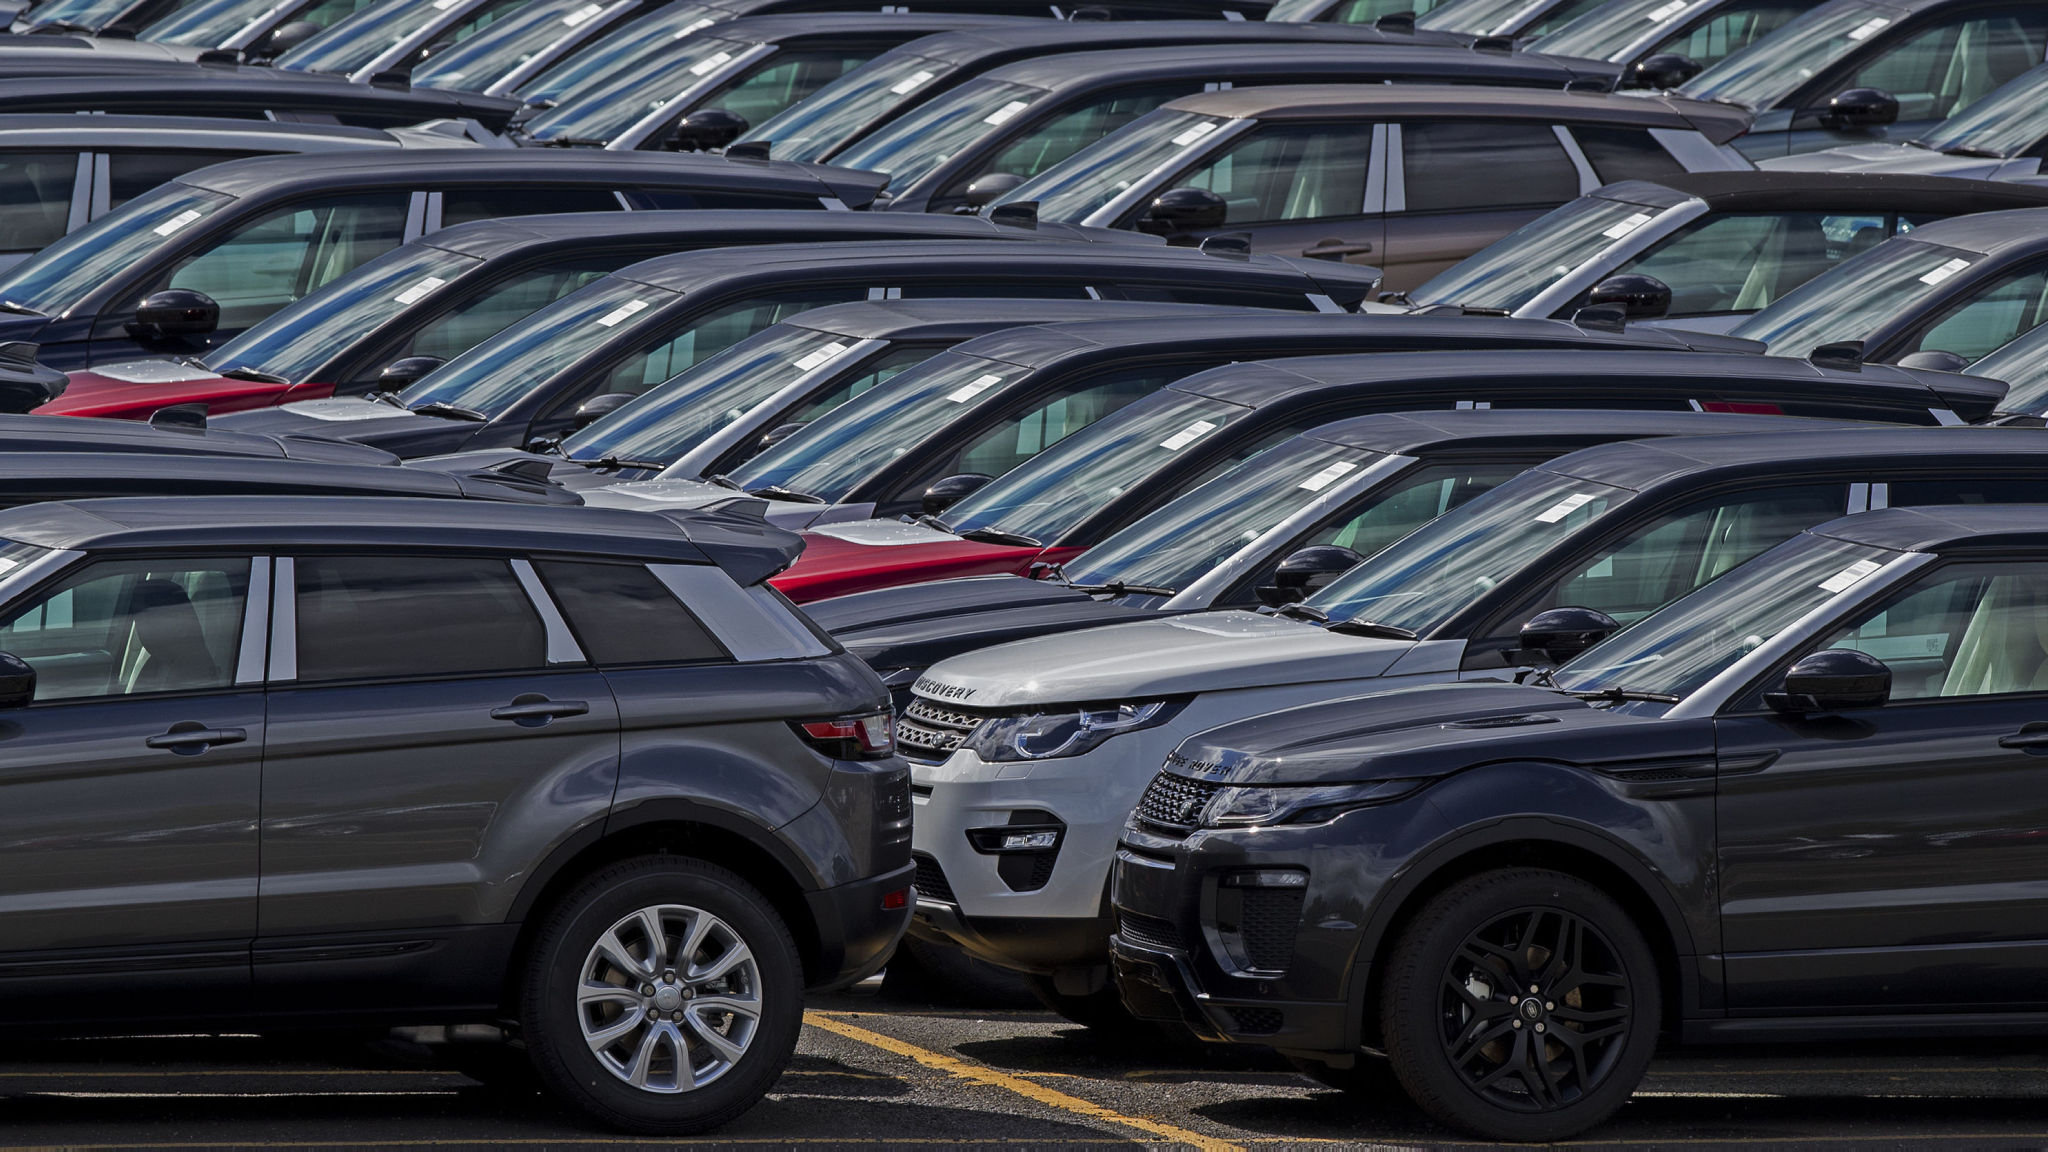 German auto parts maker ZF buys Wabco for $7bn | Financial Times